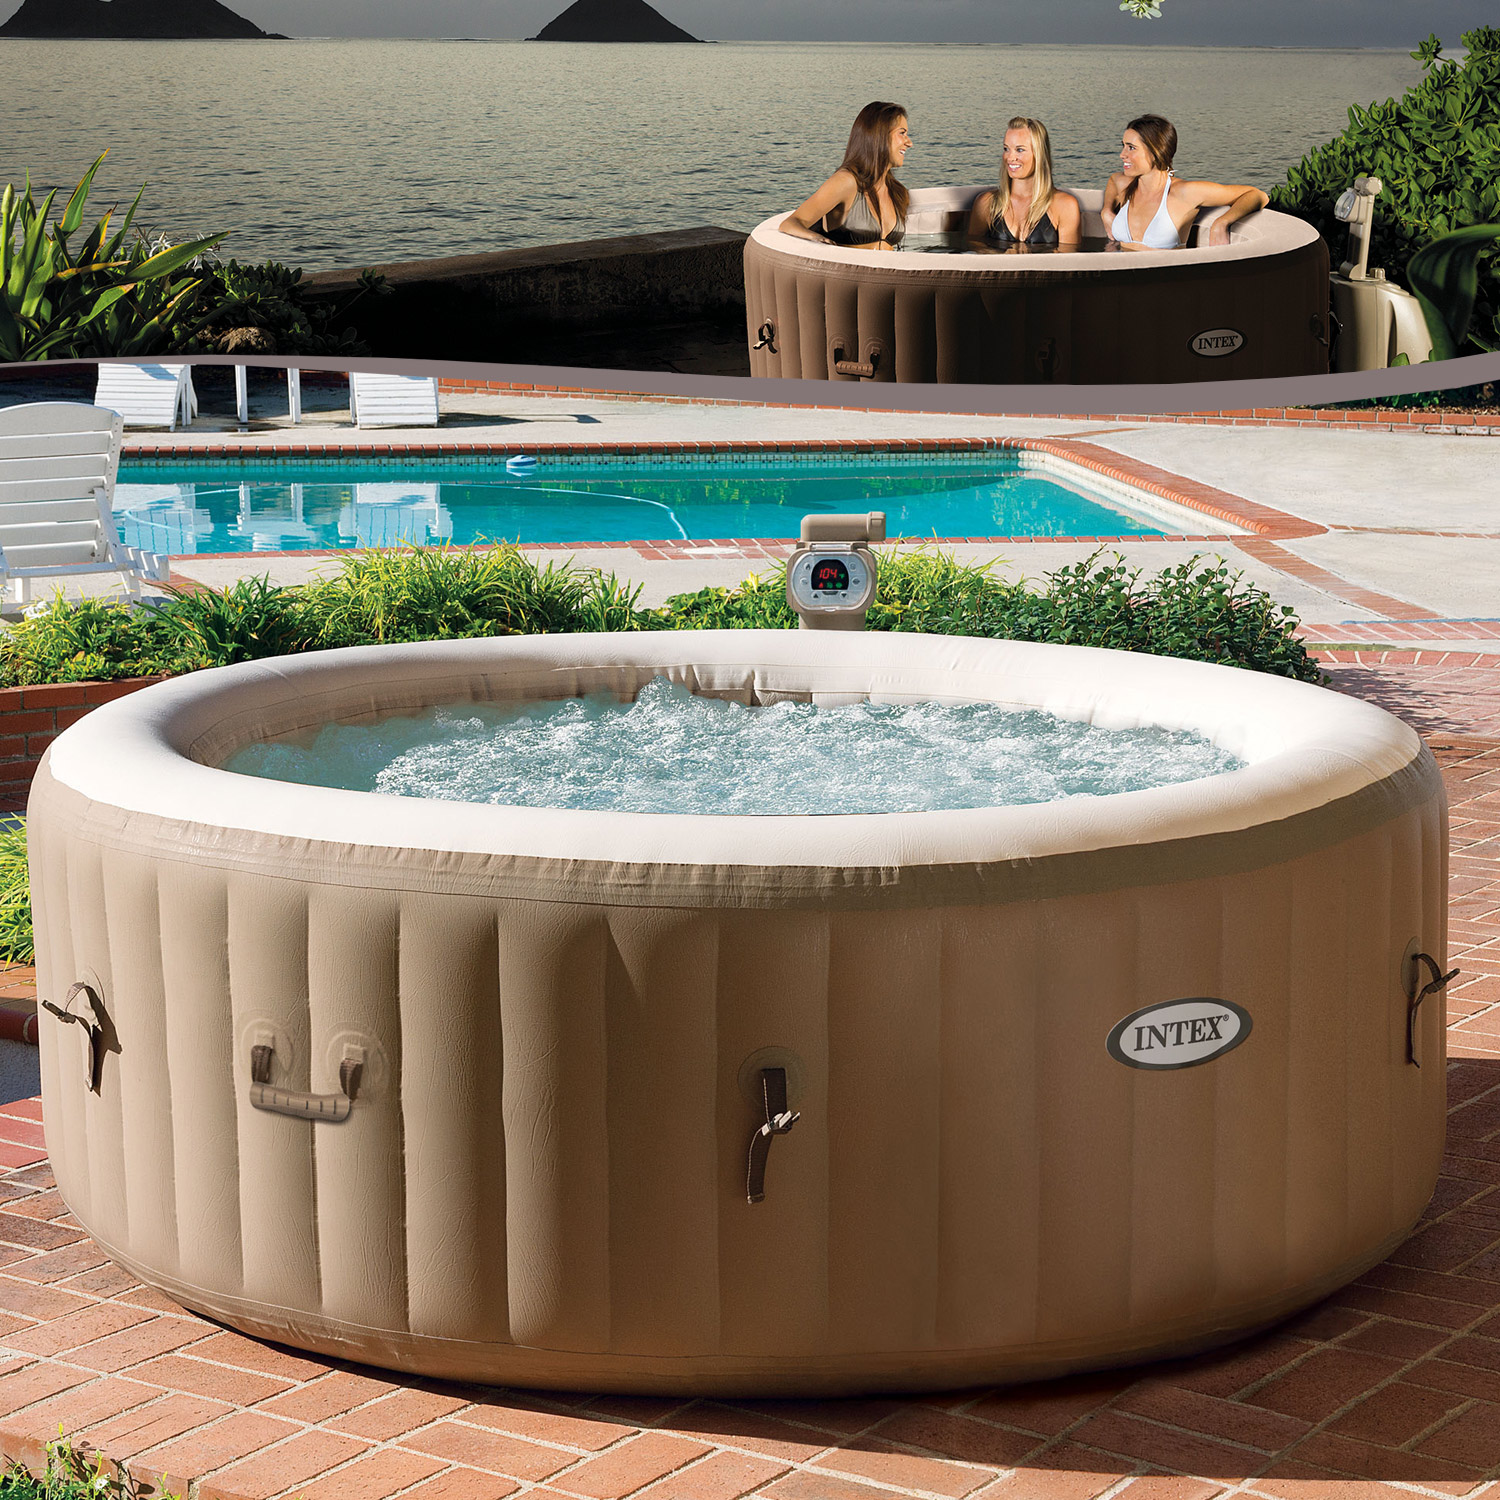 Jacuzzi In Pool Intex 128404 Whirlpool Spa Ø196x71cm Pool Bathtub Jacuzzi